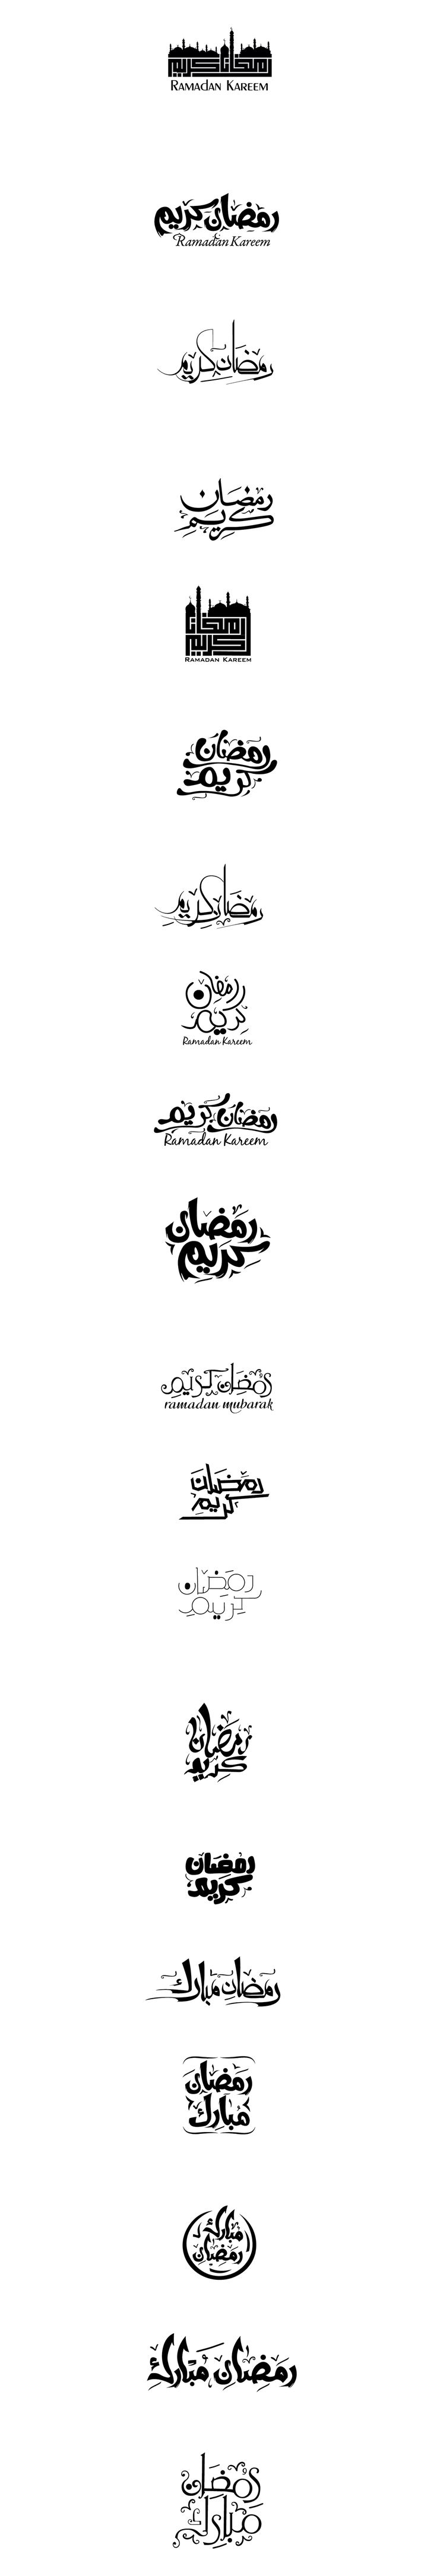 15 must see ramadan pins ramadan decorations eid and ramadan crafts ramadan kreem on behance 16031604 159315751605 16081575160615781605 1576158216101585 1548 15851605159015751606 1603158516101605